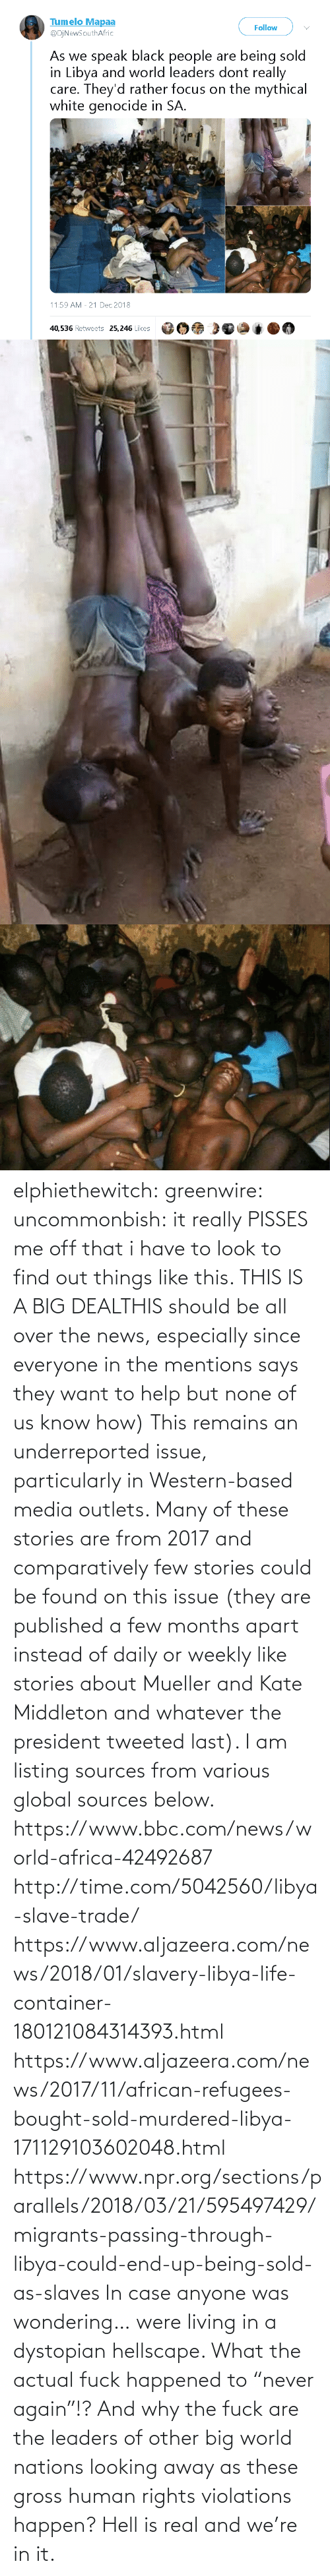 "Last: elphiethewitch: greenwire:  uncommonbish:  it really PISSES me off that i have to look to find out things like this. THIS IS A BIG DEALTHIS should be all over the news, especially since everyone in the mentions says they want to help but none of us know how)  This remains an underreported issue, particularly in Western-based media outlets. Many of these stories are from 2017 and comparatively few stories could be found on this issue (they are published a few months apart instead of daily or weekly like stories about Mueller and Kate Middleton and whatever the president tweeted last). I am listing sources from various global sources below.  https://www.bbc.com/news/world-africa-42492687 http://time.com/5042560/libya-slave-trade/ https://www.aljazeera.com/news/2018/01/slavery-libya-life-container-180121084314393.html https://www.aljazeera.com/news/2017/11/african-refugees-bought-sold-murdered-libya-171129103602048.html https://www.npr.org/sections/parallels/2018/03/21/595497429/migrants-passing-through-libya-could-end-up-being-sold-as-slaves   In case anyone was wondering… were living in a dystopian hellscape.  What the actual fuck happened to ""never again""!? And why the fuck are the leaders of other big world nations looking away as these gross human rights violations happen?  Hell is real and we're in it."